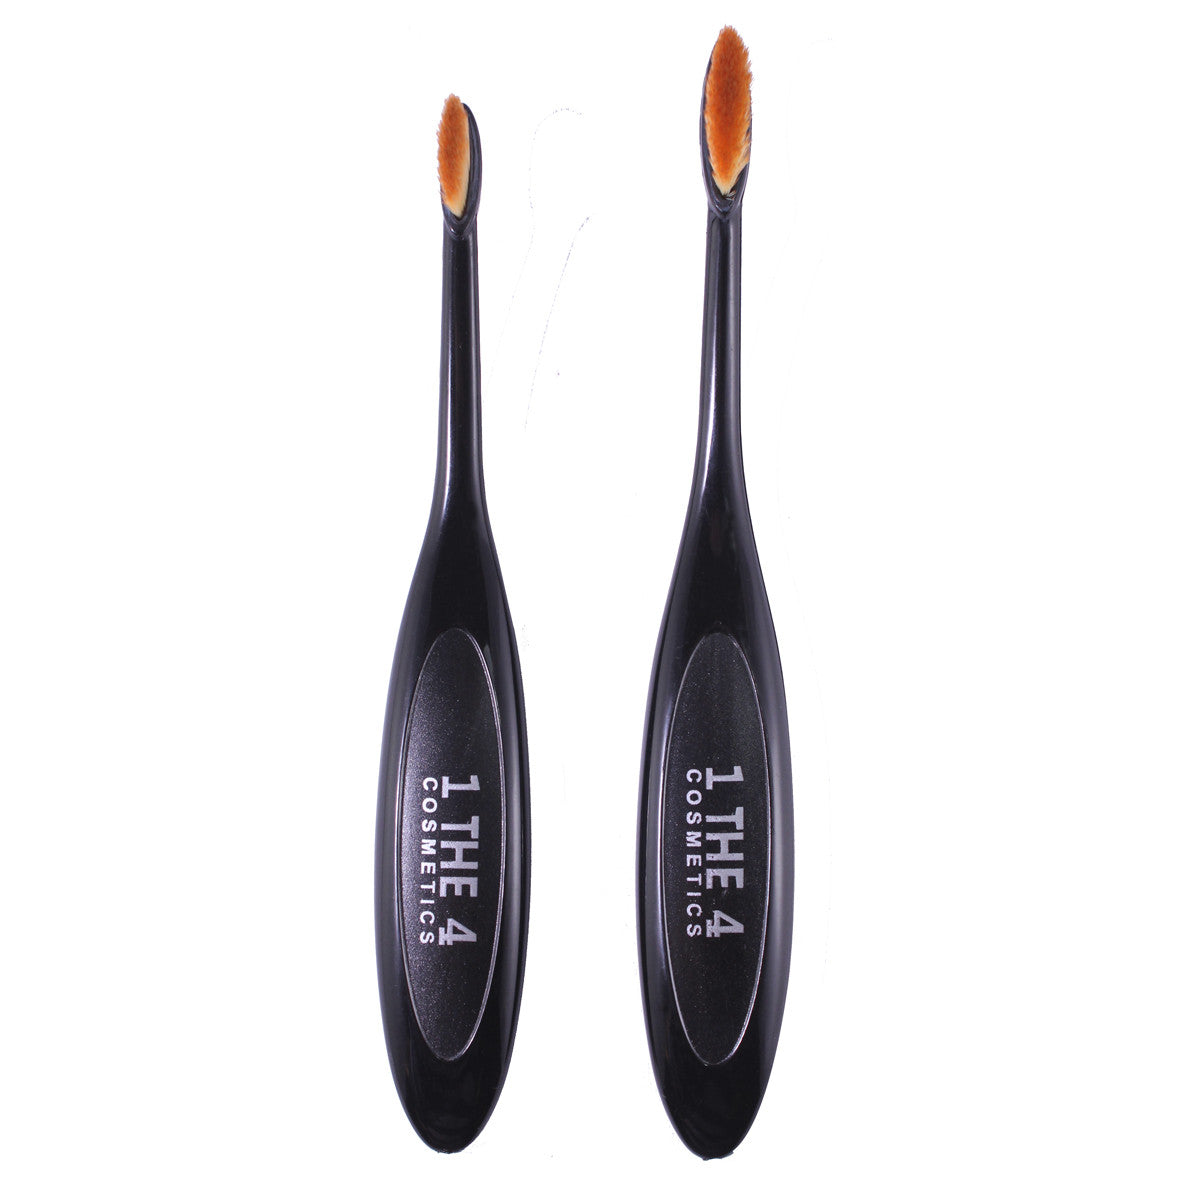 Foundation Oval Makeup Contouring Powder Brush 2 in 1 Set